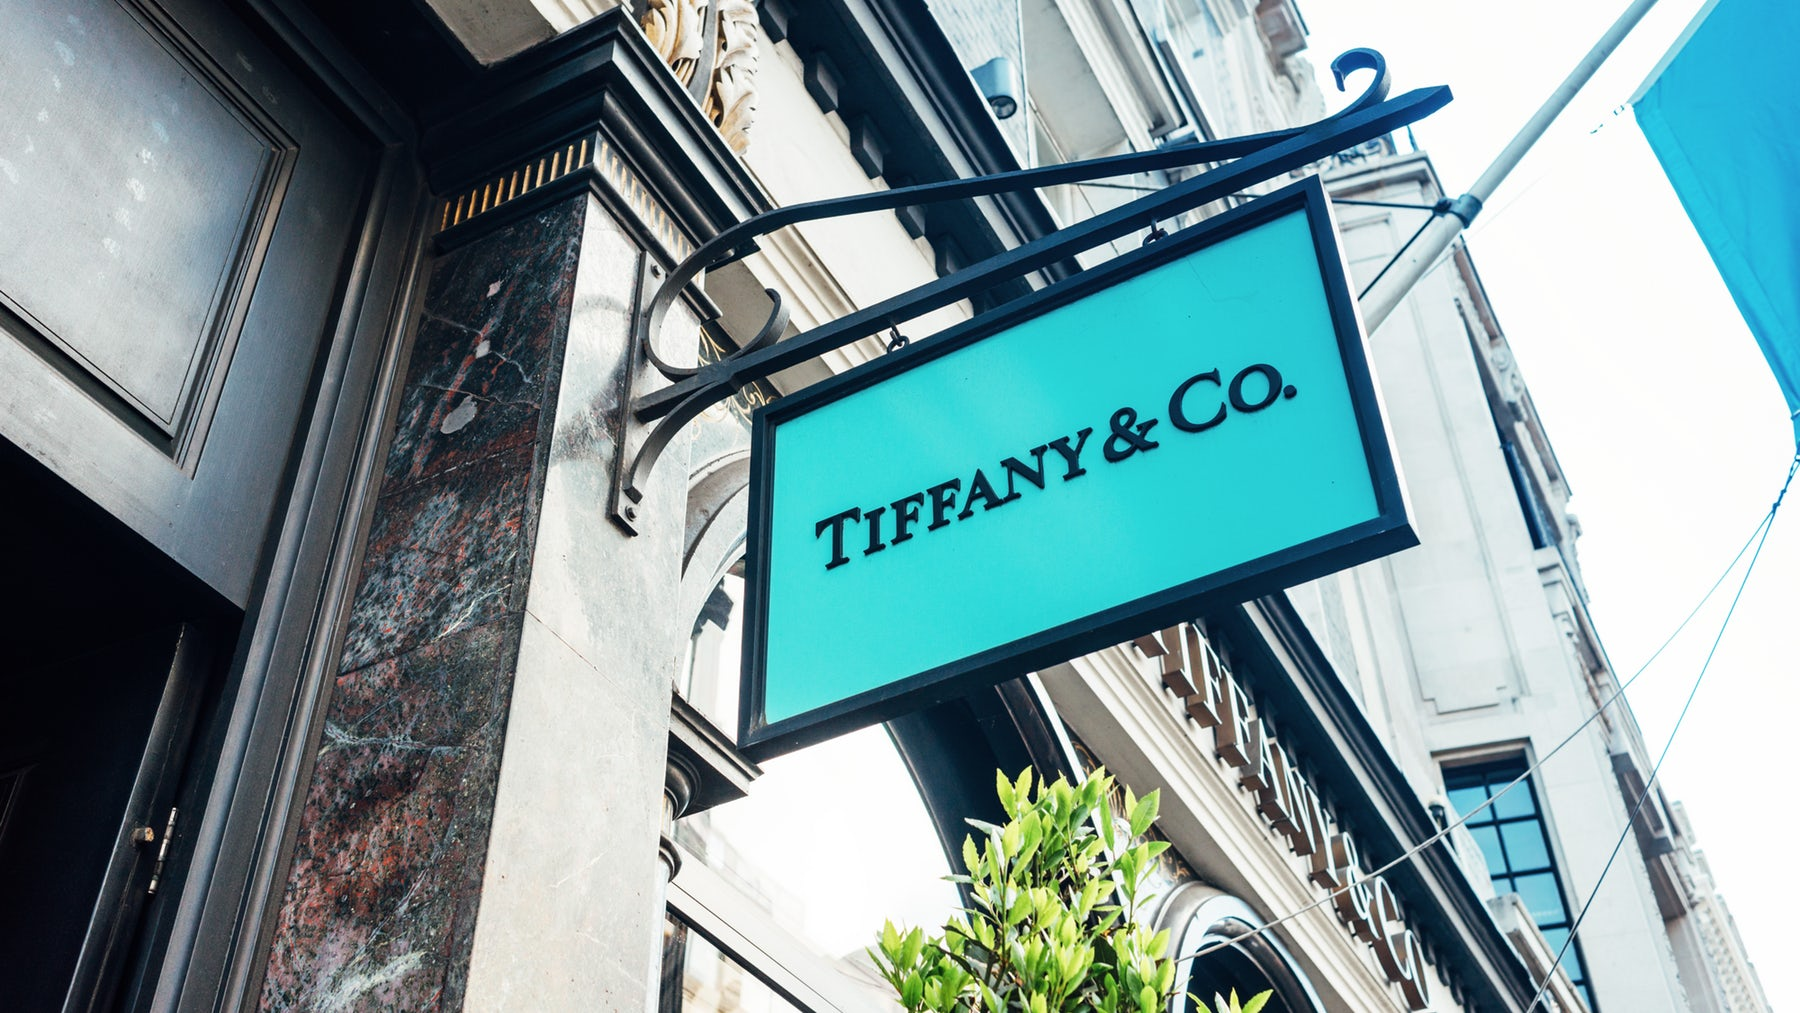 Tiffany & Co storefront | Source: Shutterstock